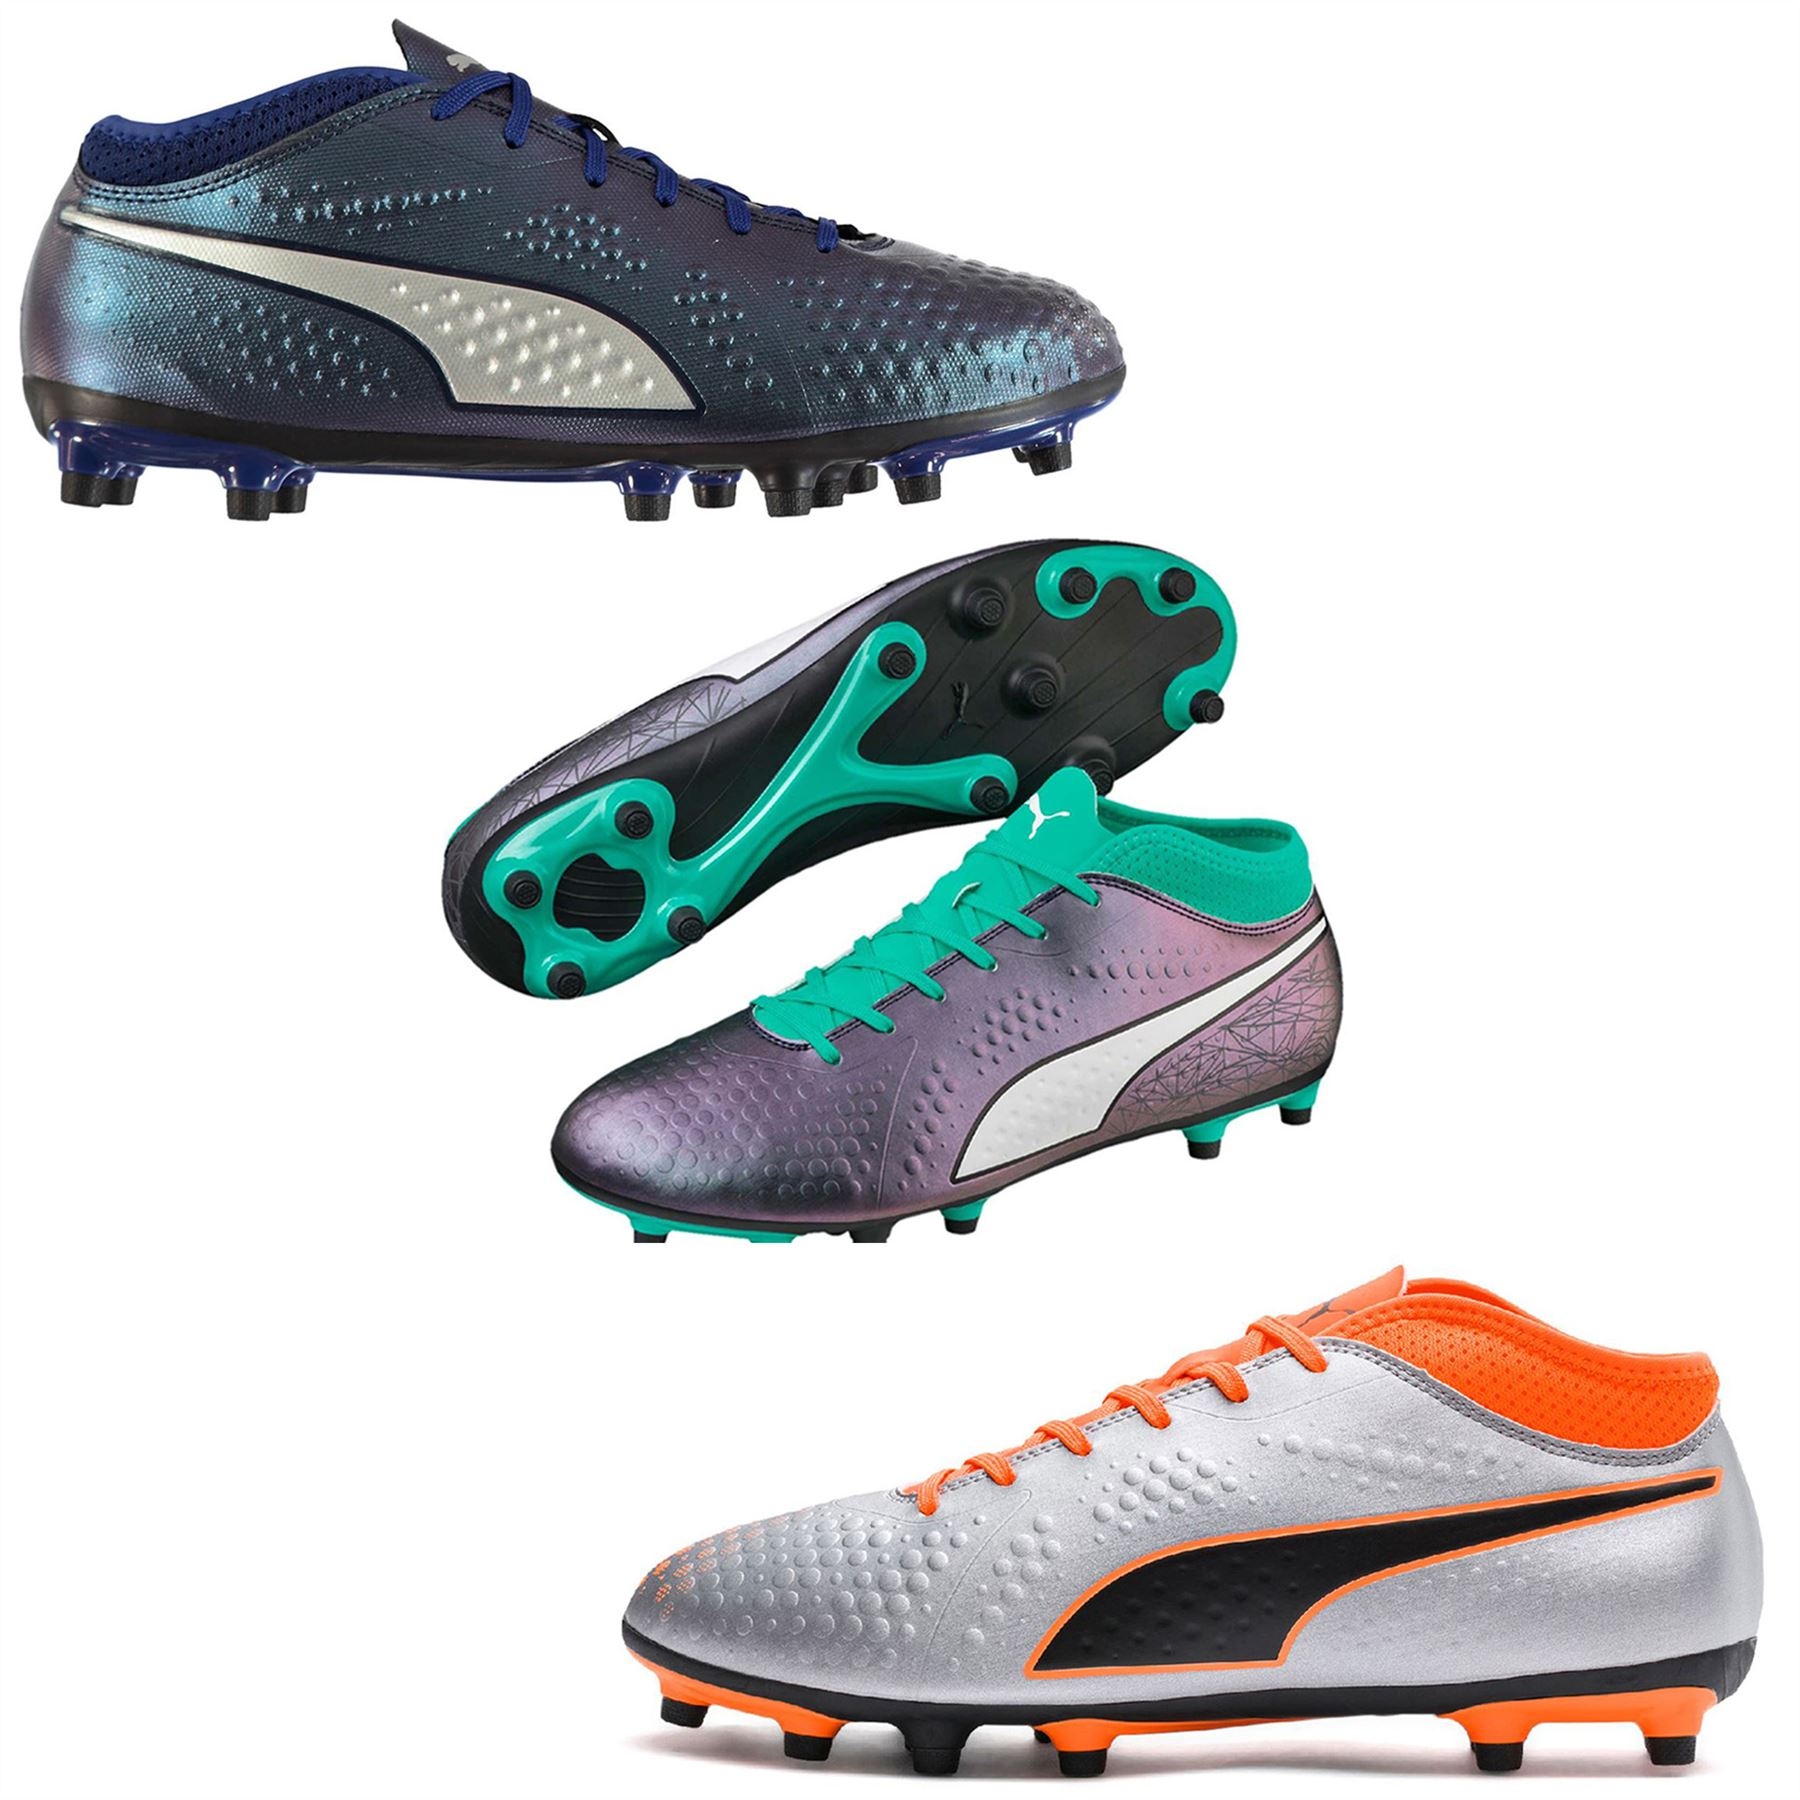 9a10632d72e7 Details about Puma ONE 4 FG Firm Ground Football Boots Mens Soccer Shoes  Cleats